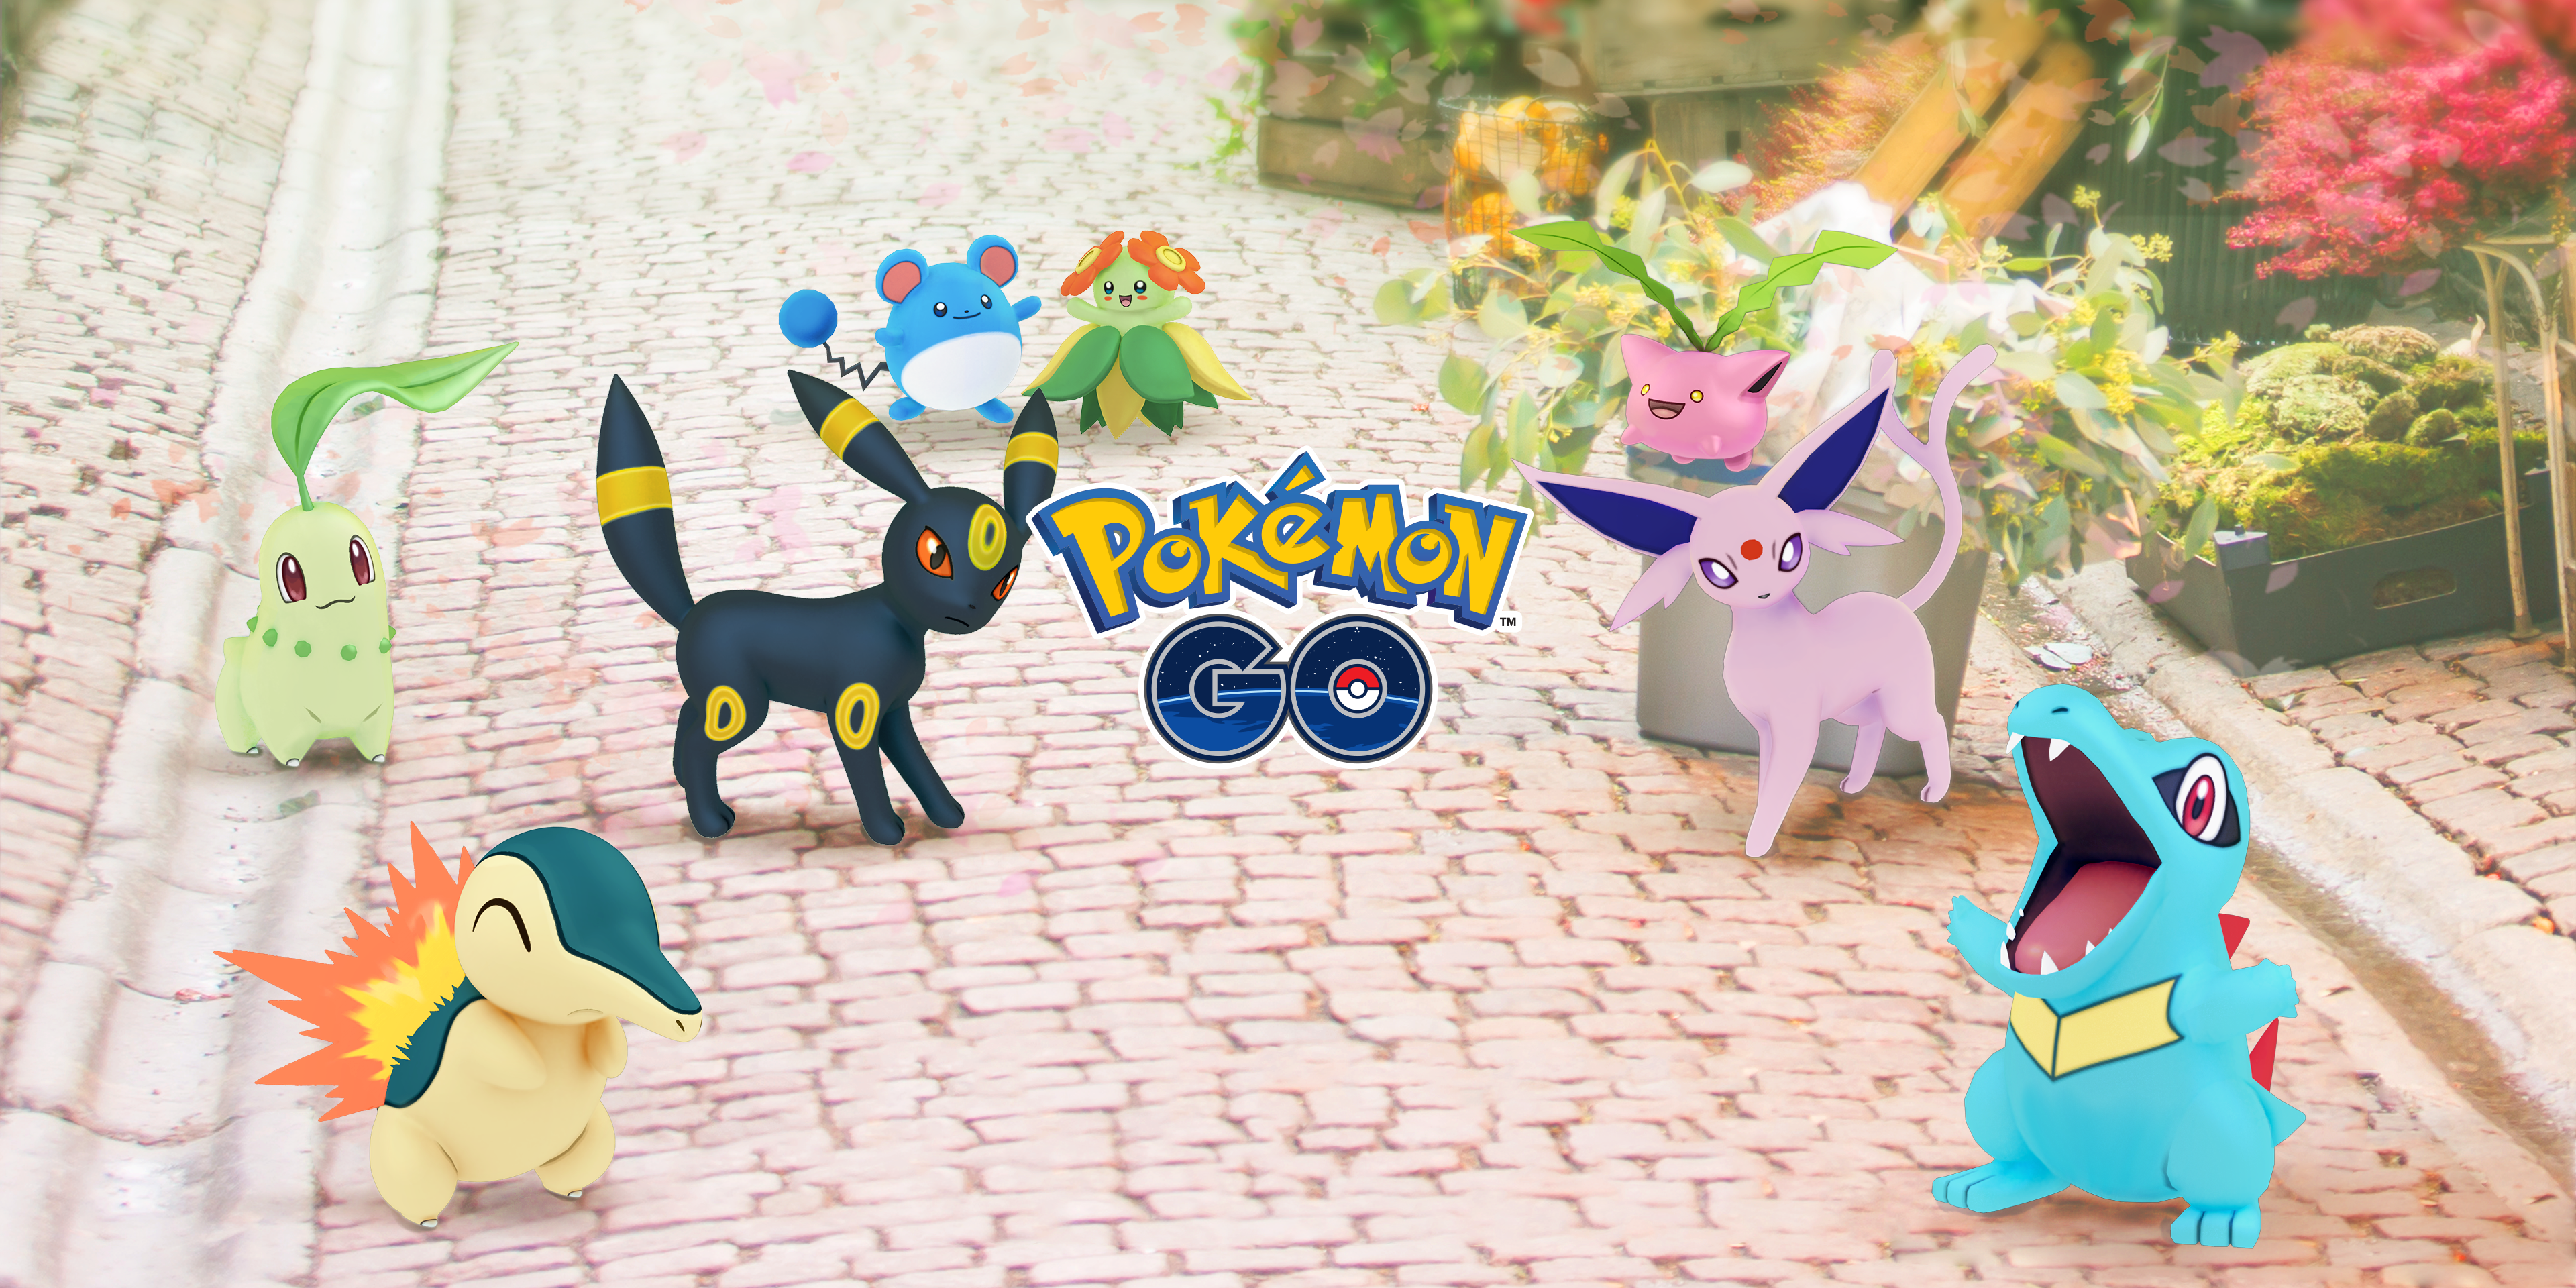 Pokémon GO: Events in May 2021 with new monsters - that's coming up